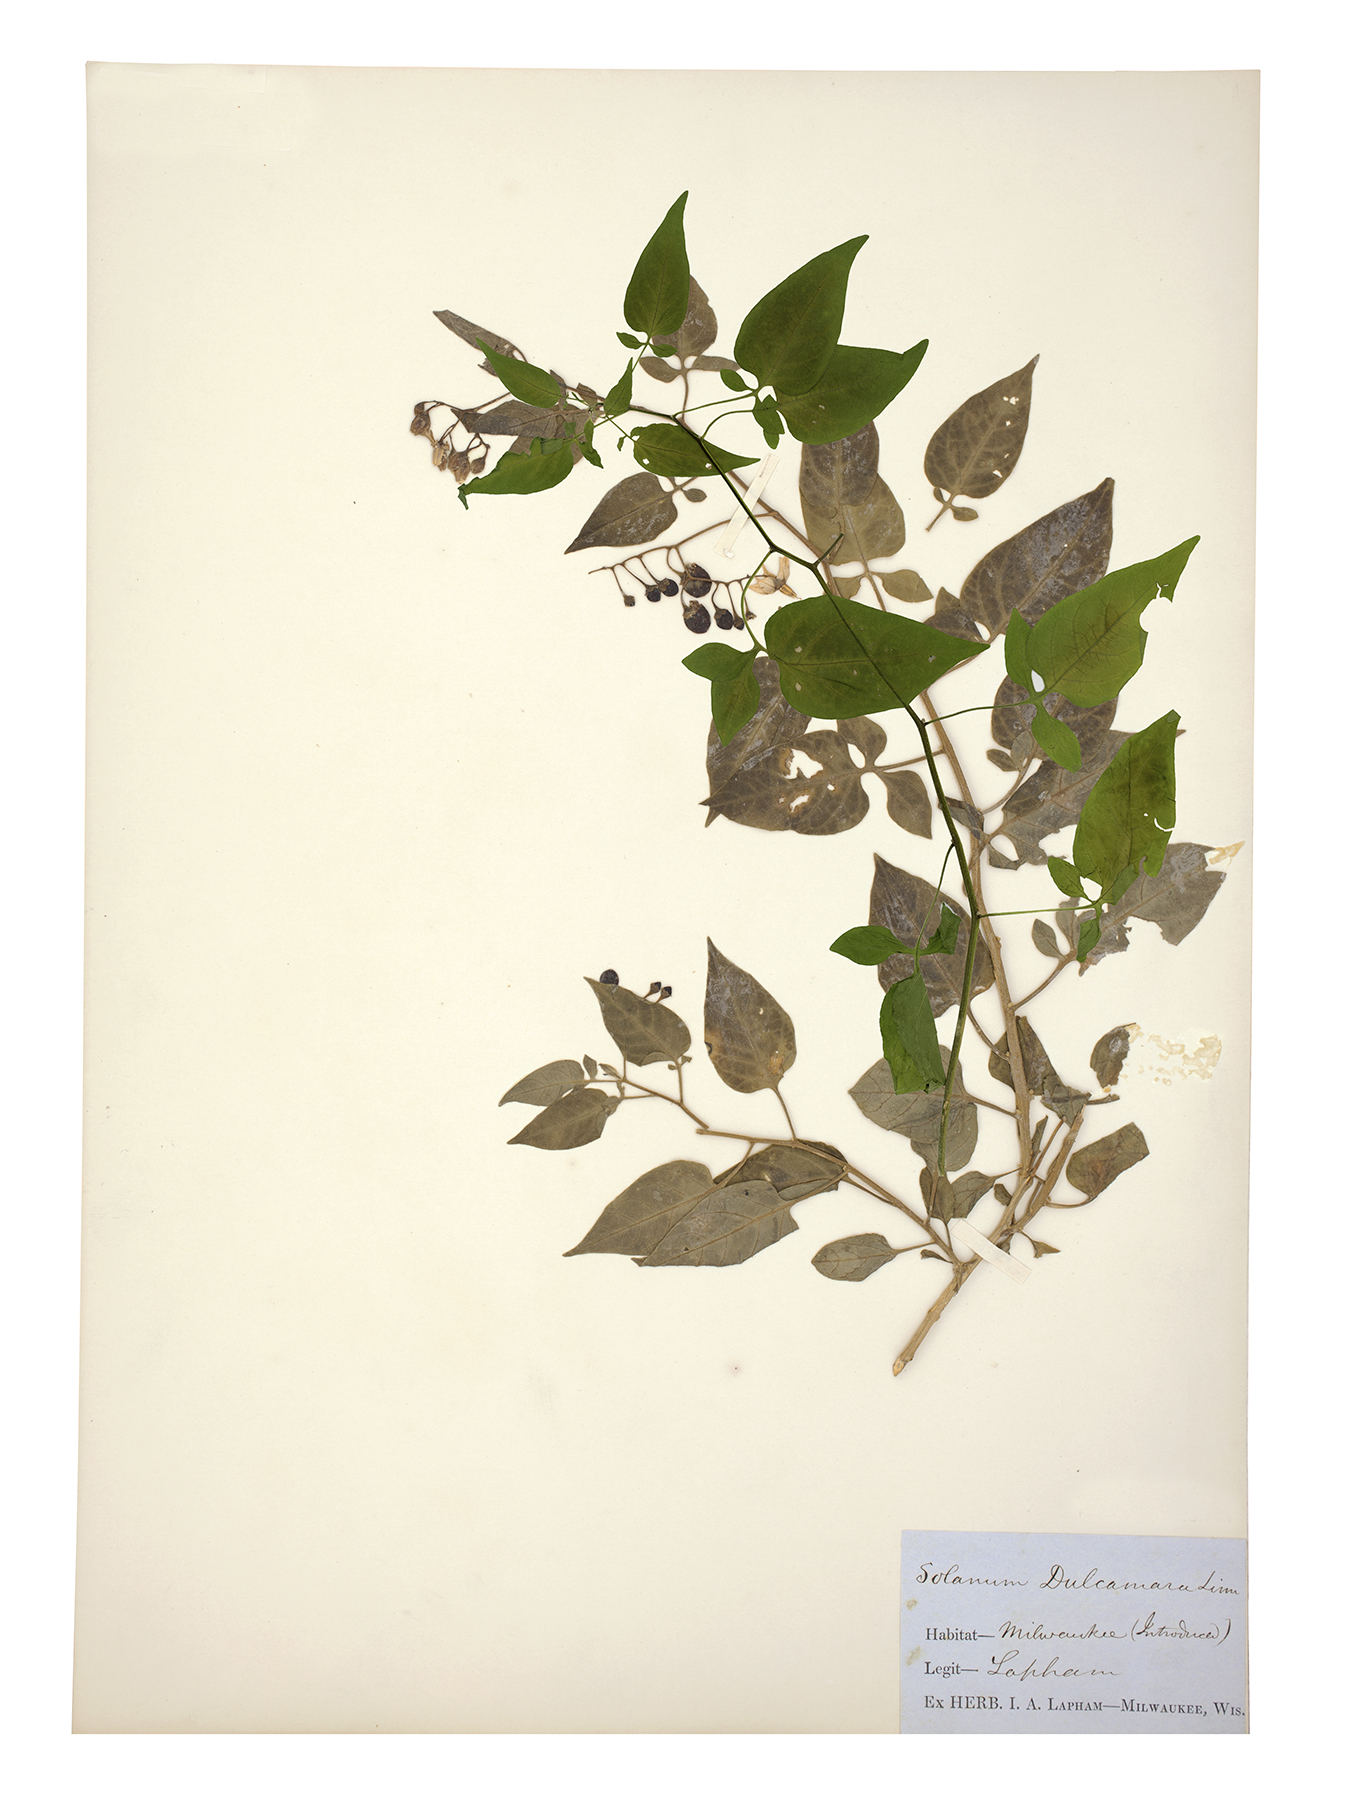 Nightshade specimen collected by Increase Lapham 1835-40 overlaid by sample collected by Jill Sebastian 2017